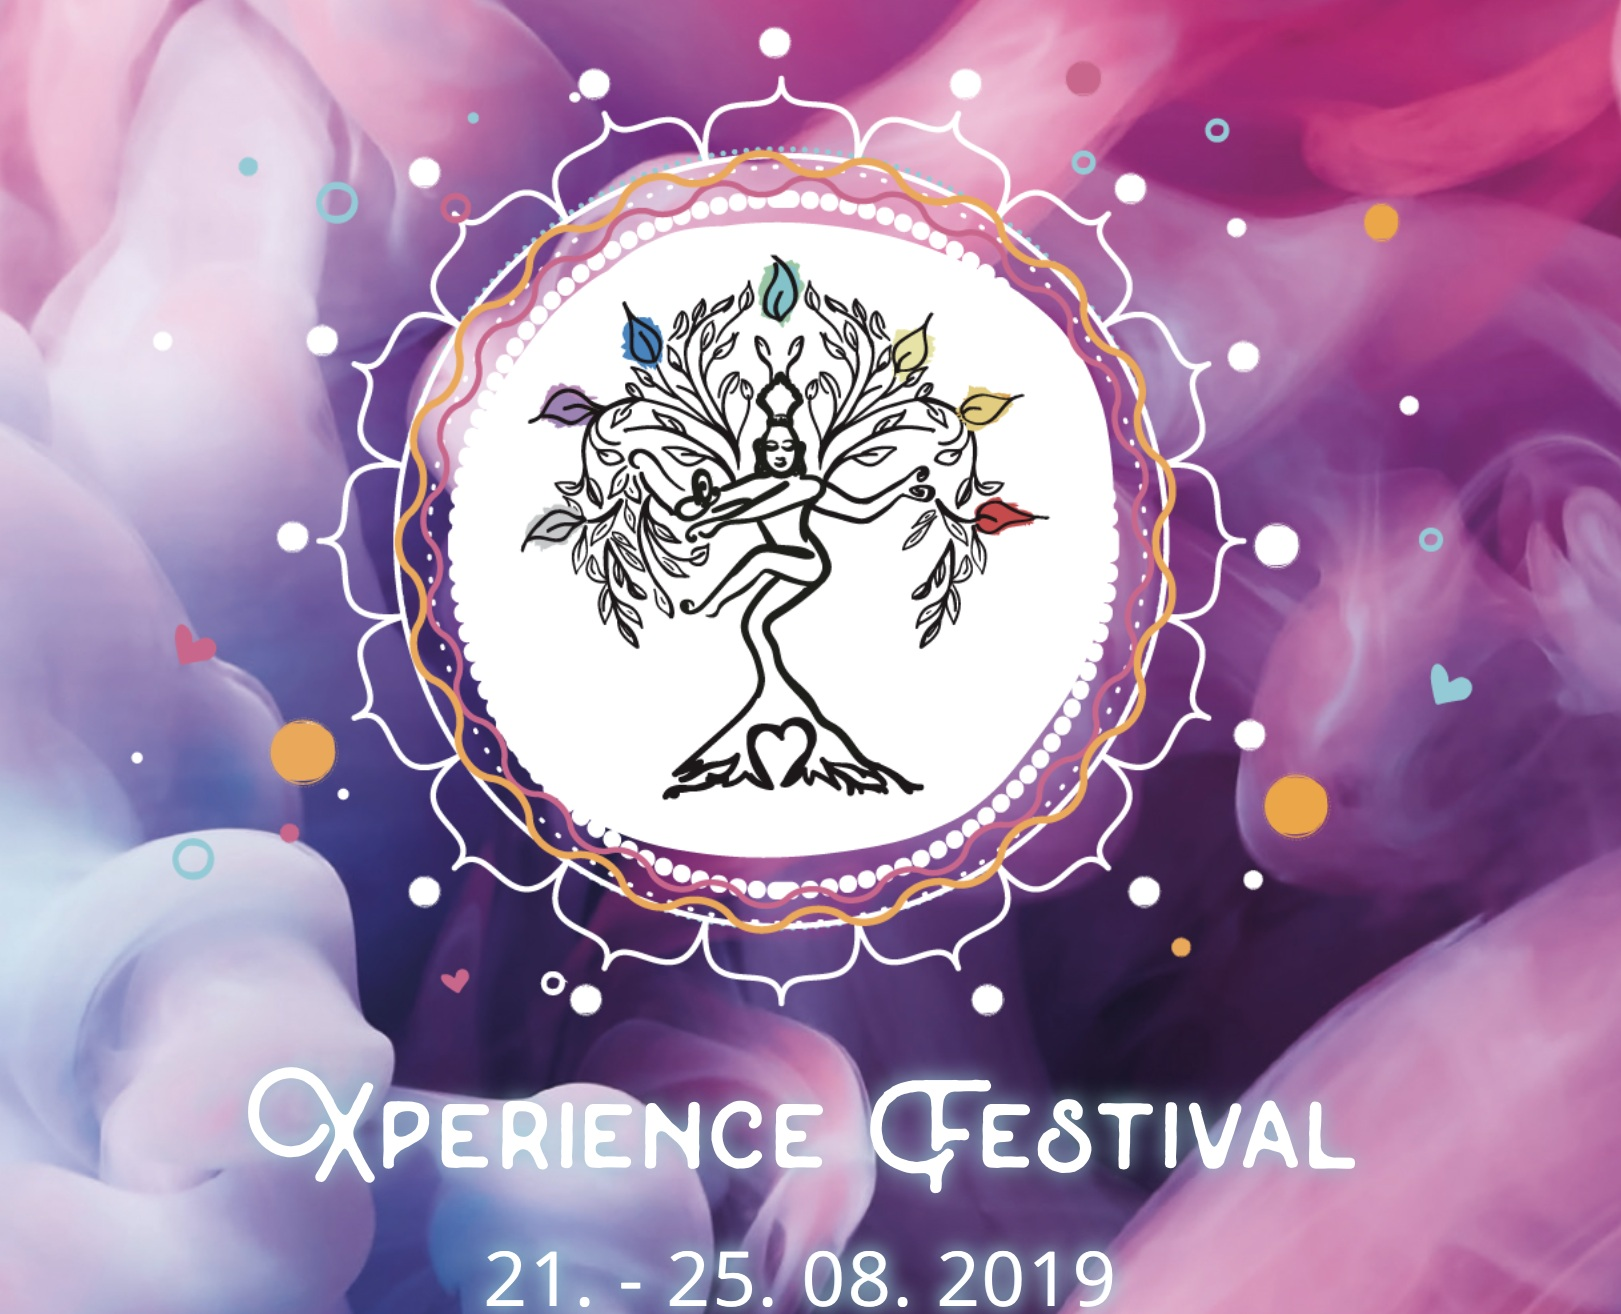 Xperience Festival  21 - 25 August 2019 - Join Aria and Gus for the wonderful Xperience Festival an art, yoga and music fest held in Germany!Our schedule for the FestivalYoga: Fr 16:45-18:15 | 90min | Heart Opening | YogaYogaYay!Yoga: Sa 10:00-11:30 | 90min | Inverted Tips and Tricks! | PlaygroundYoga: So 8:00-9:30 | 90min | Warrior Flow | YogaYogaYay!Festival location: Yogaweg 7 Horn-Bad Meinberg